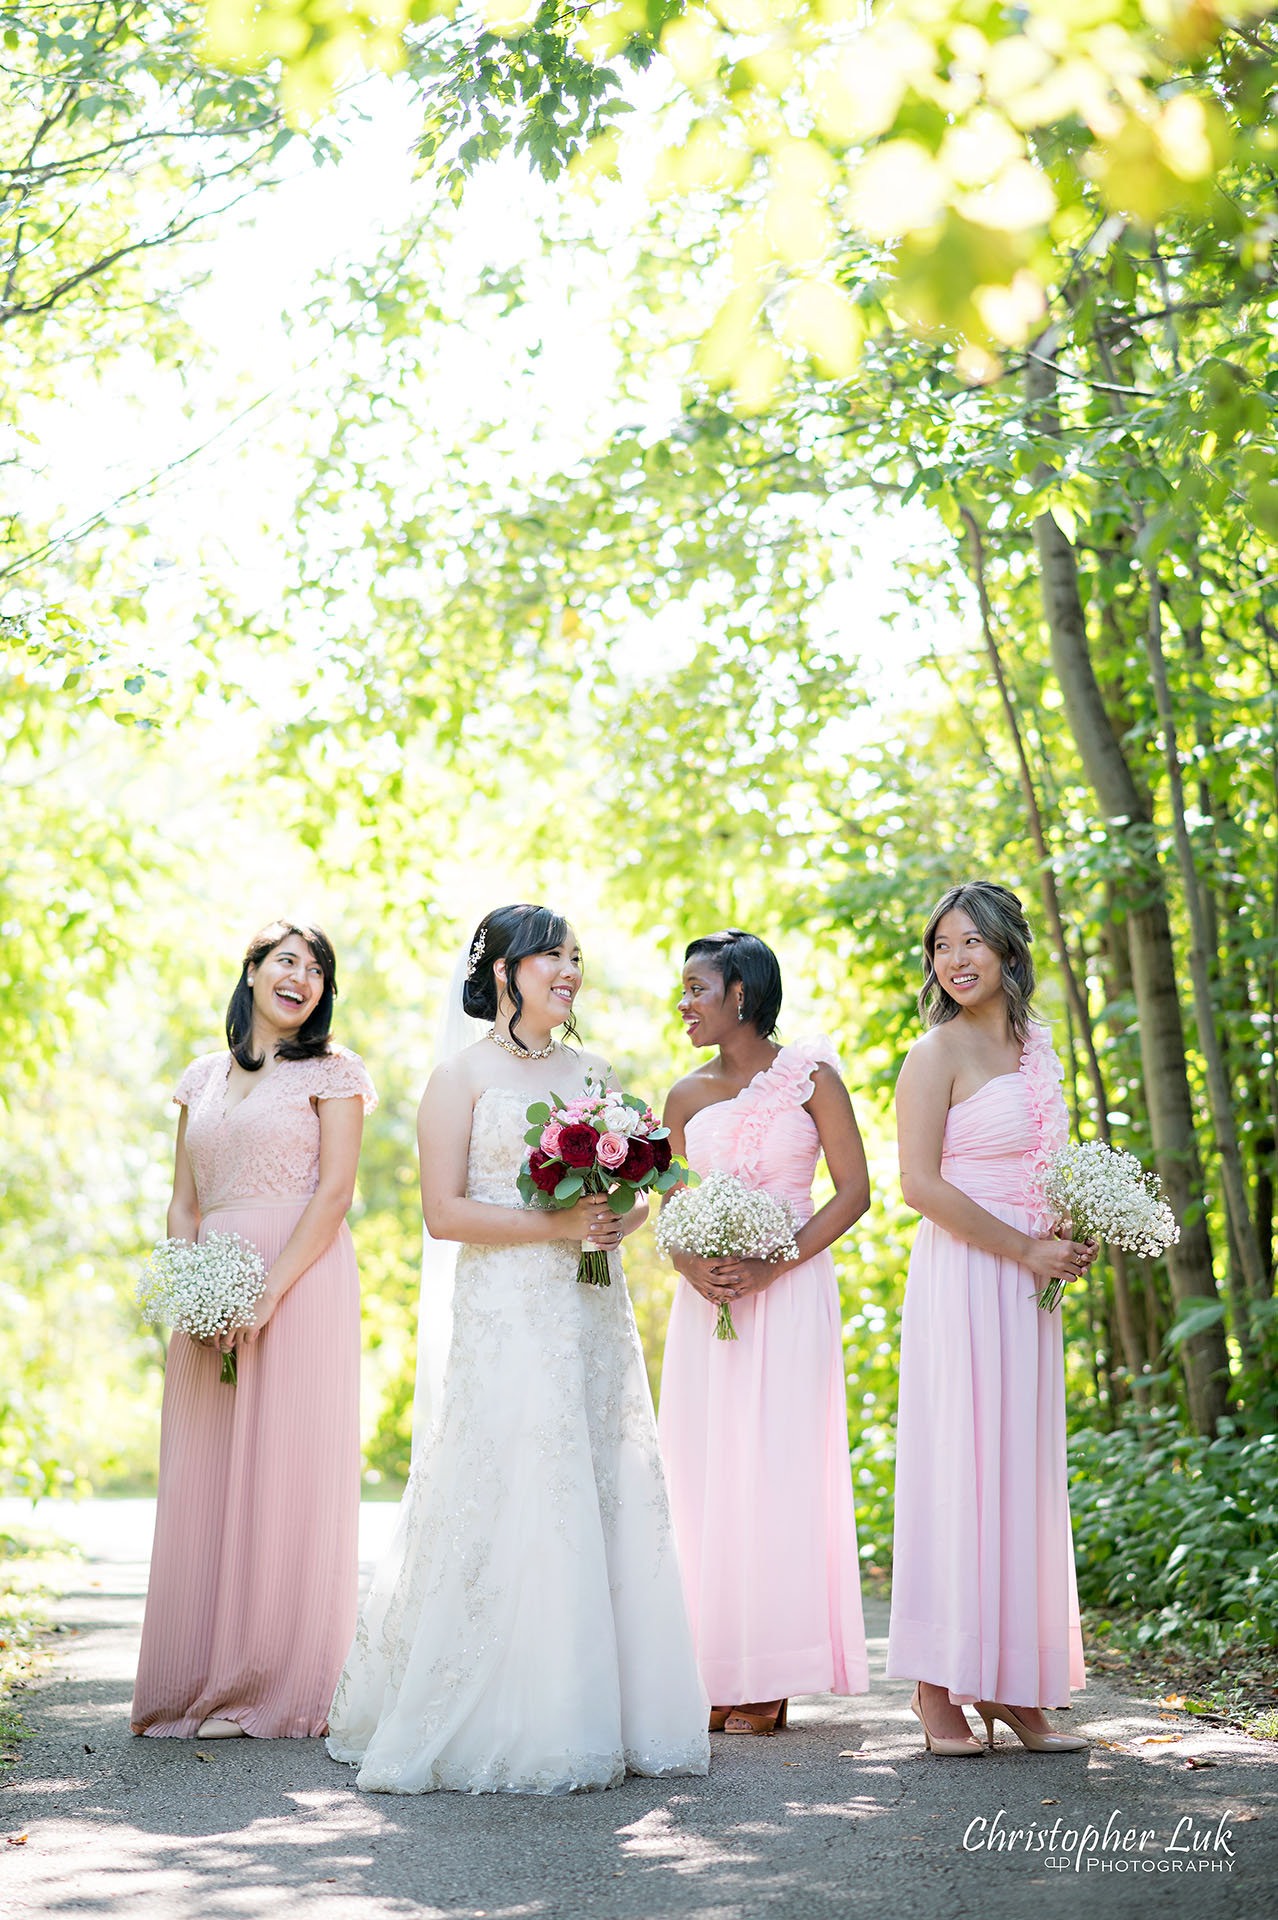 Christopher Luk Toronto Wedding Photographer Bridle Trail Baptist Church Unionville Main Street Crystal Fountain Event Venue Bride Groom Natural Photojournalistic Candid Creative Portrait Session Pictures Bridal Party Maid of Honour Bridesmaids Forest Smiling Vertical